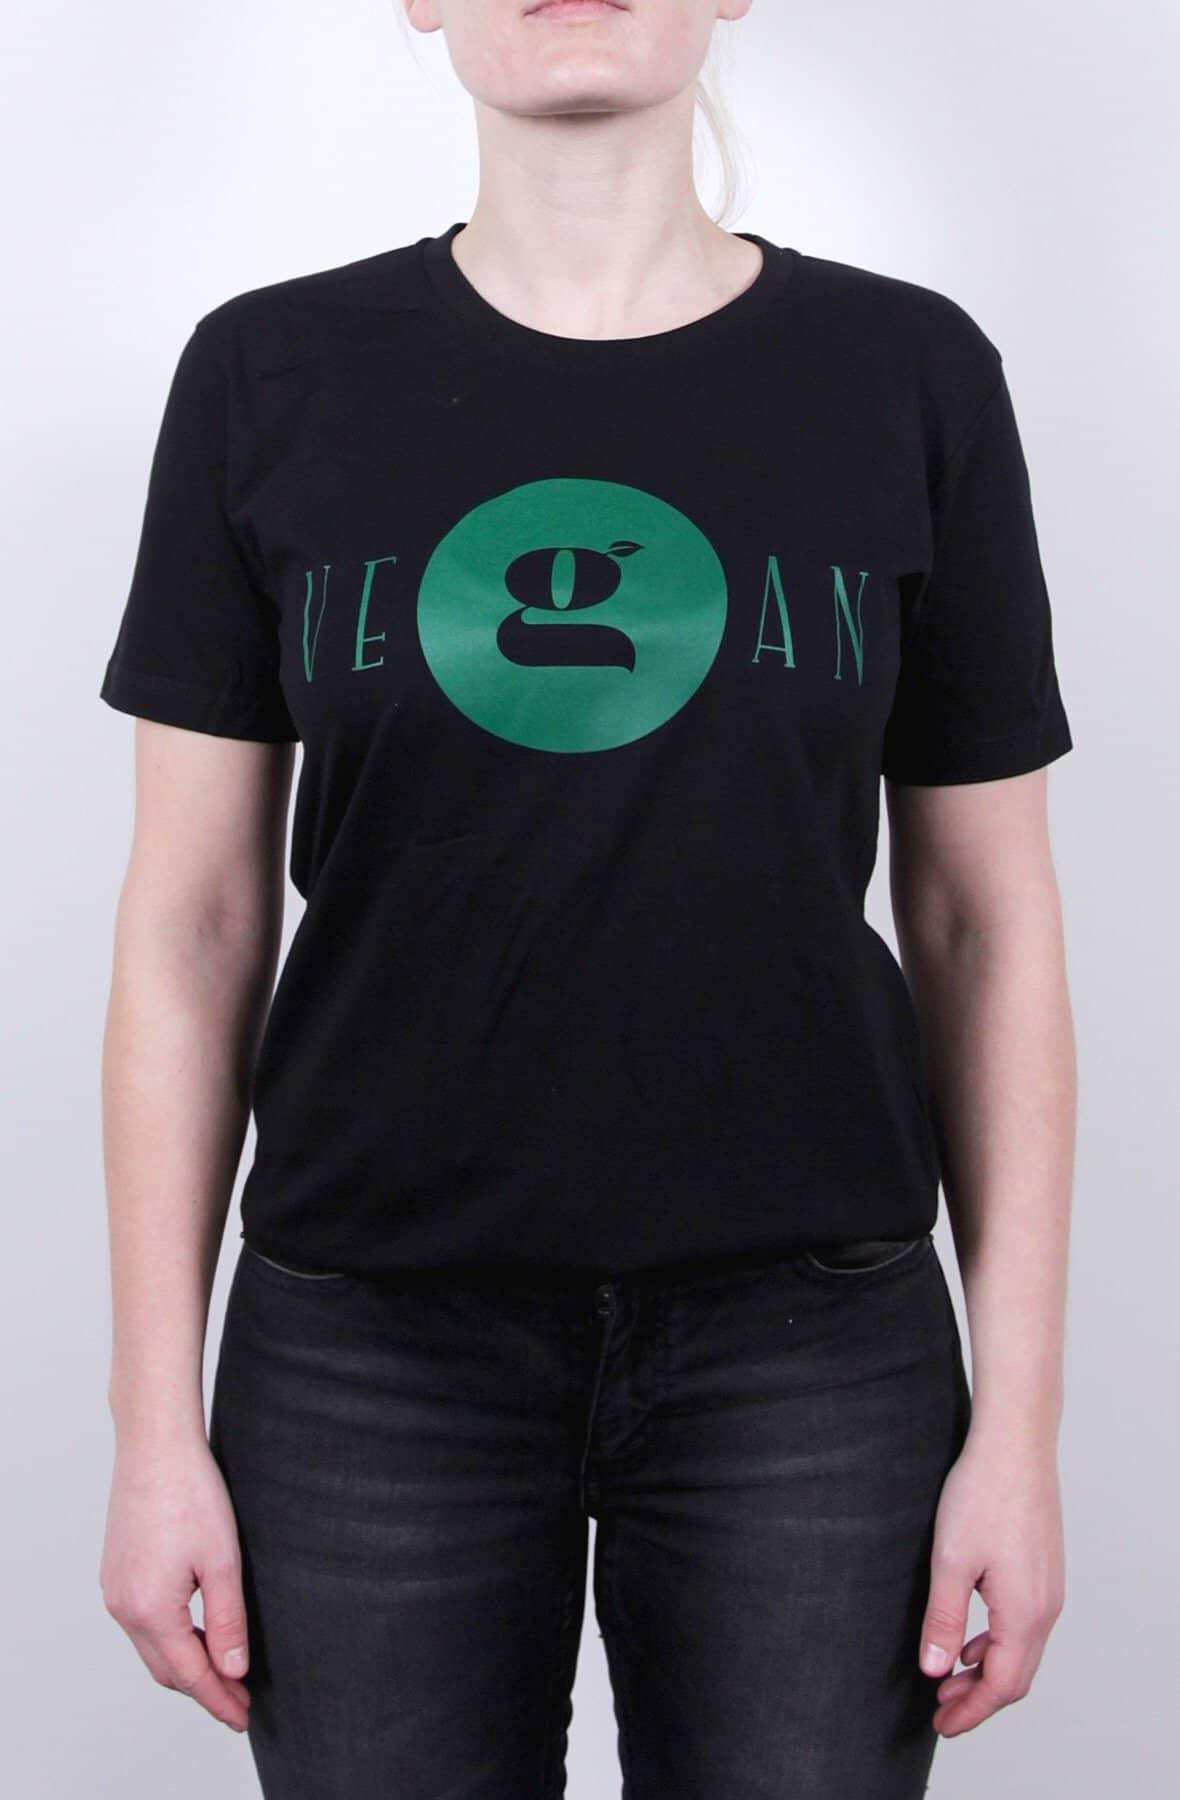 Vegan T-shirt til damer - Sort